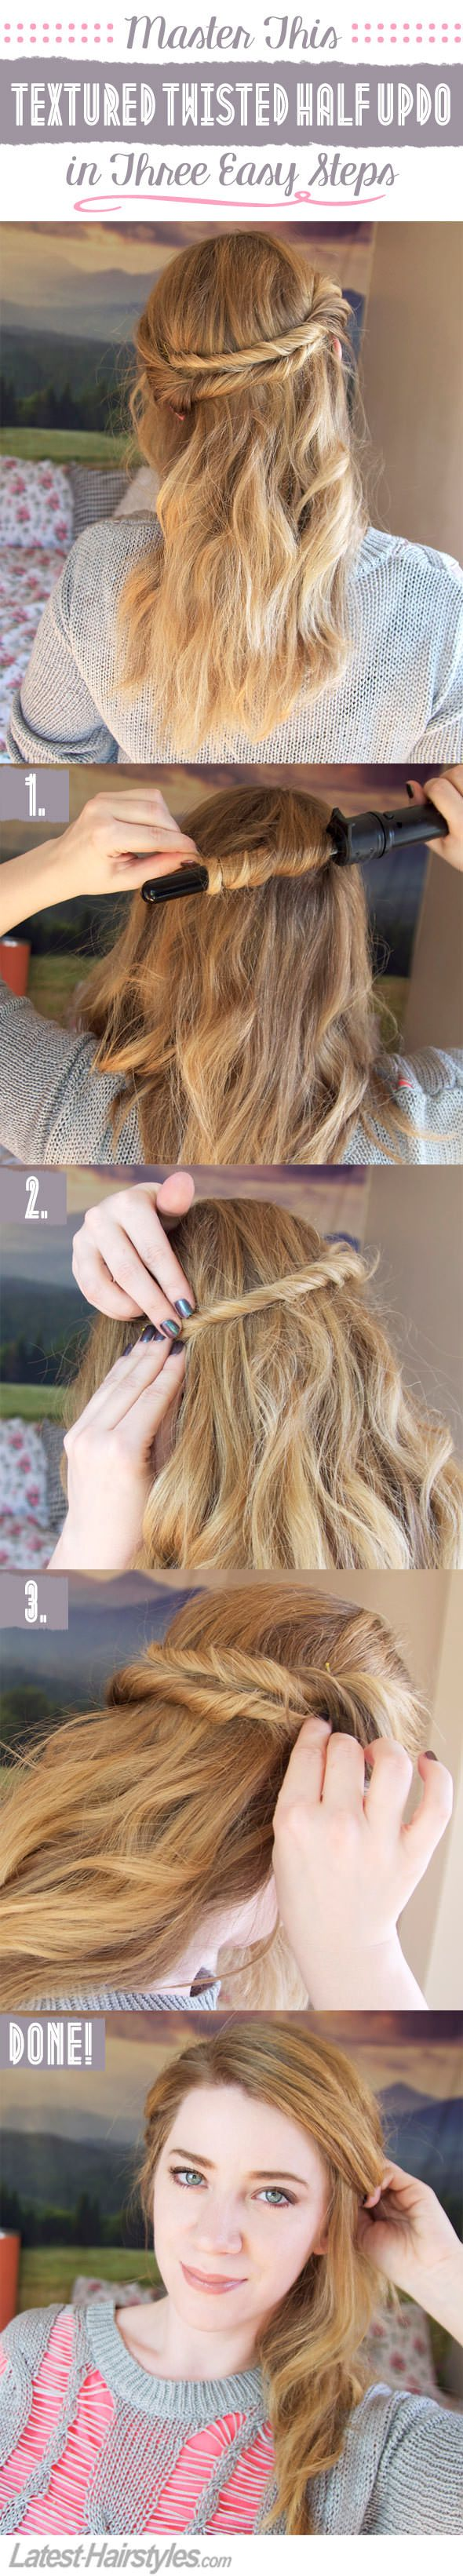 605 best Hair Tutorials images on Pinterest